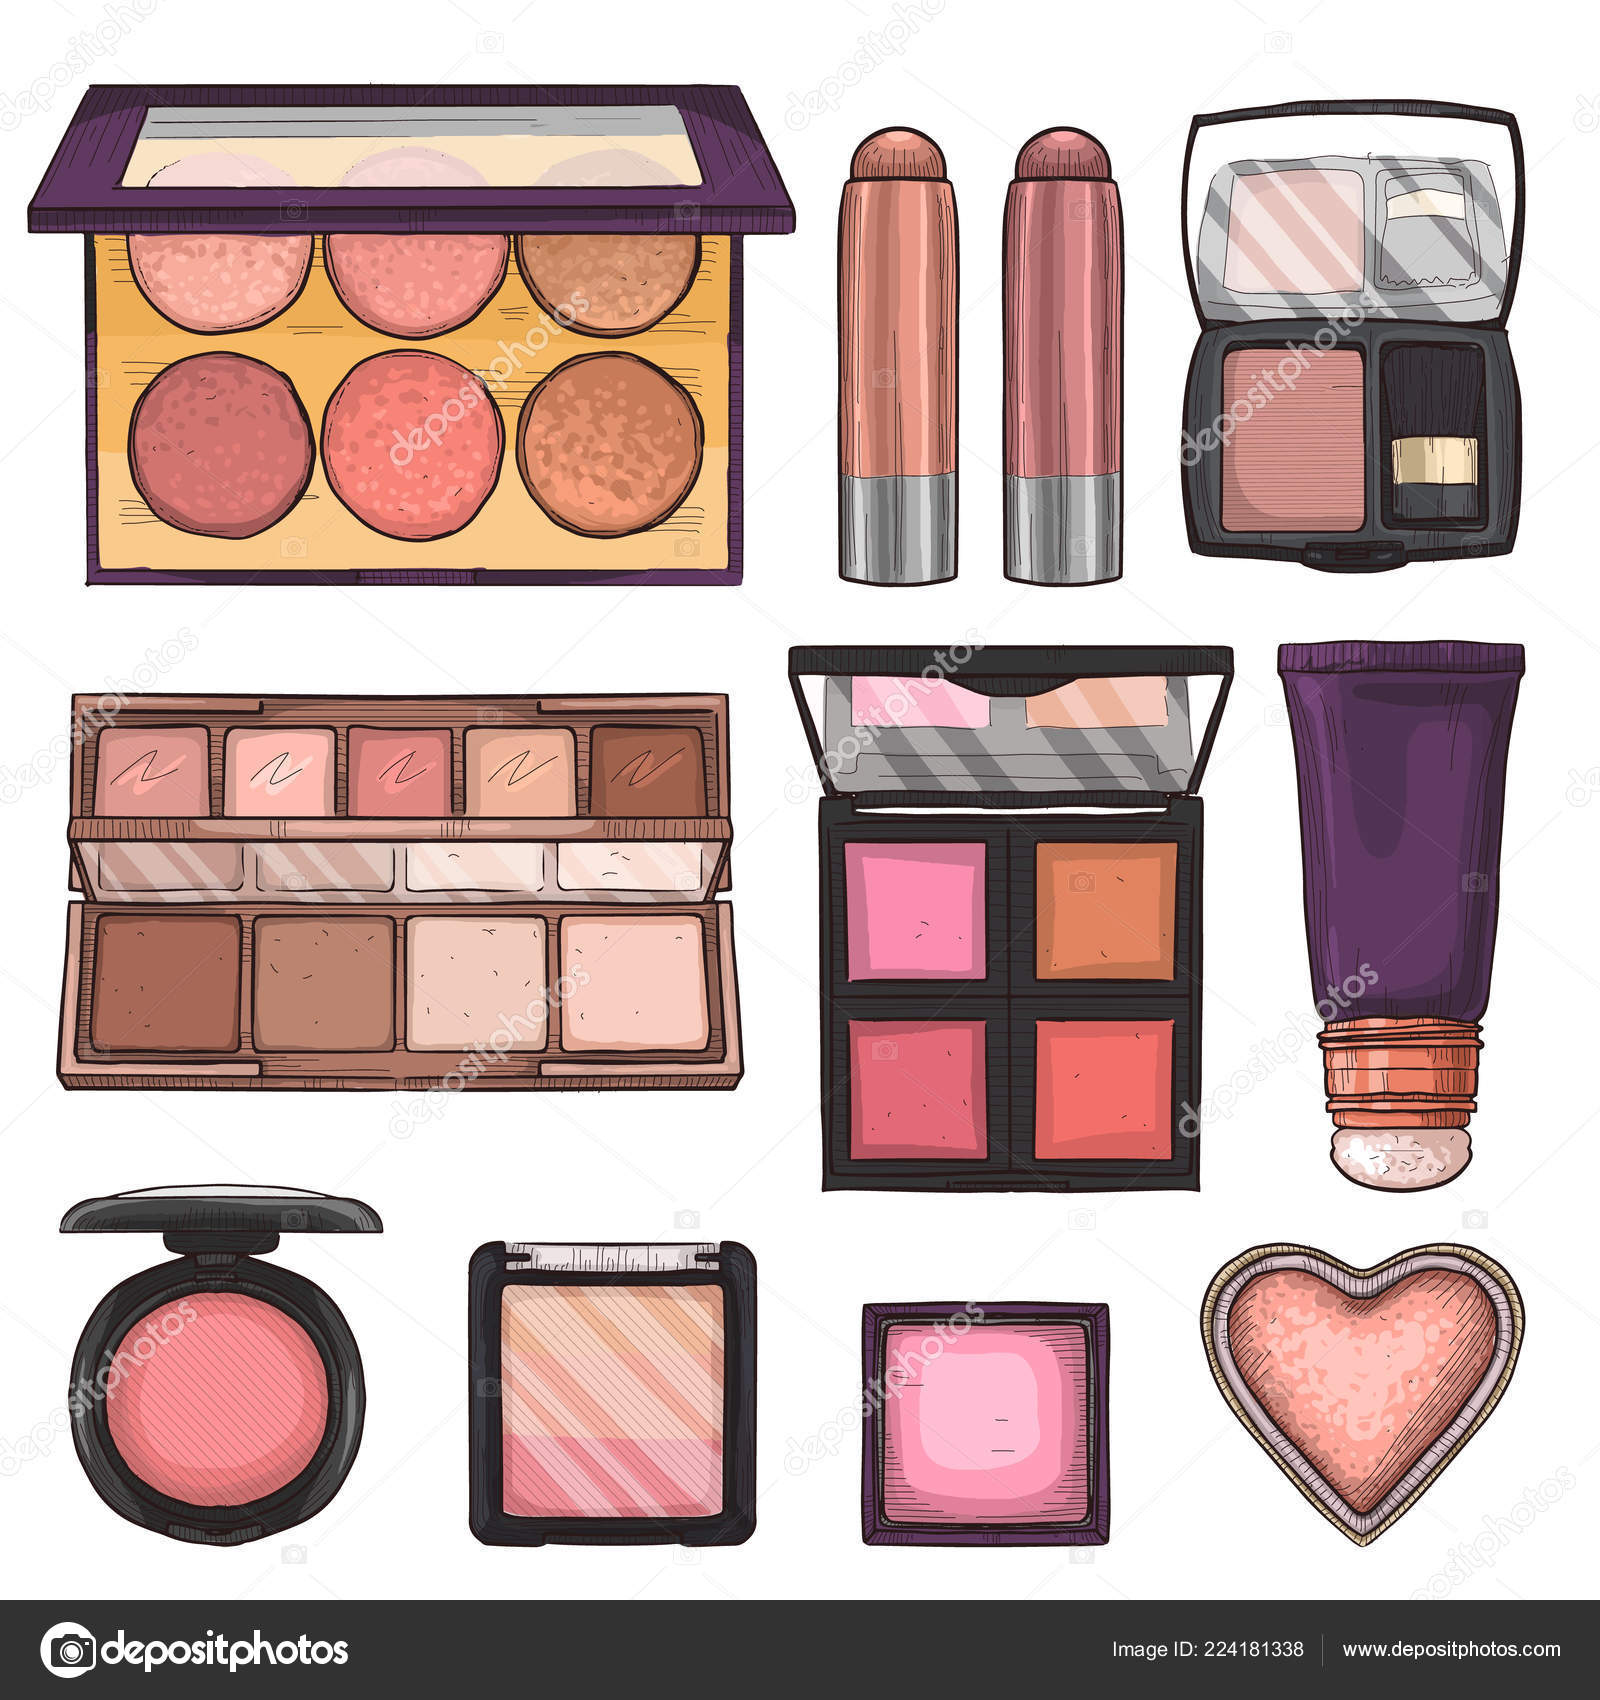 Sketch Set Of Makeup Products Stock Vector C Netkoff 224181338